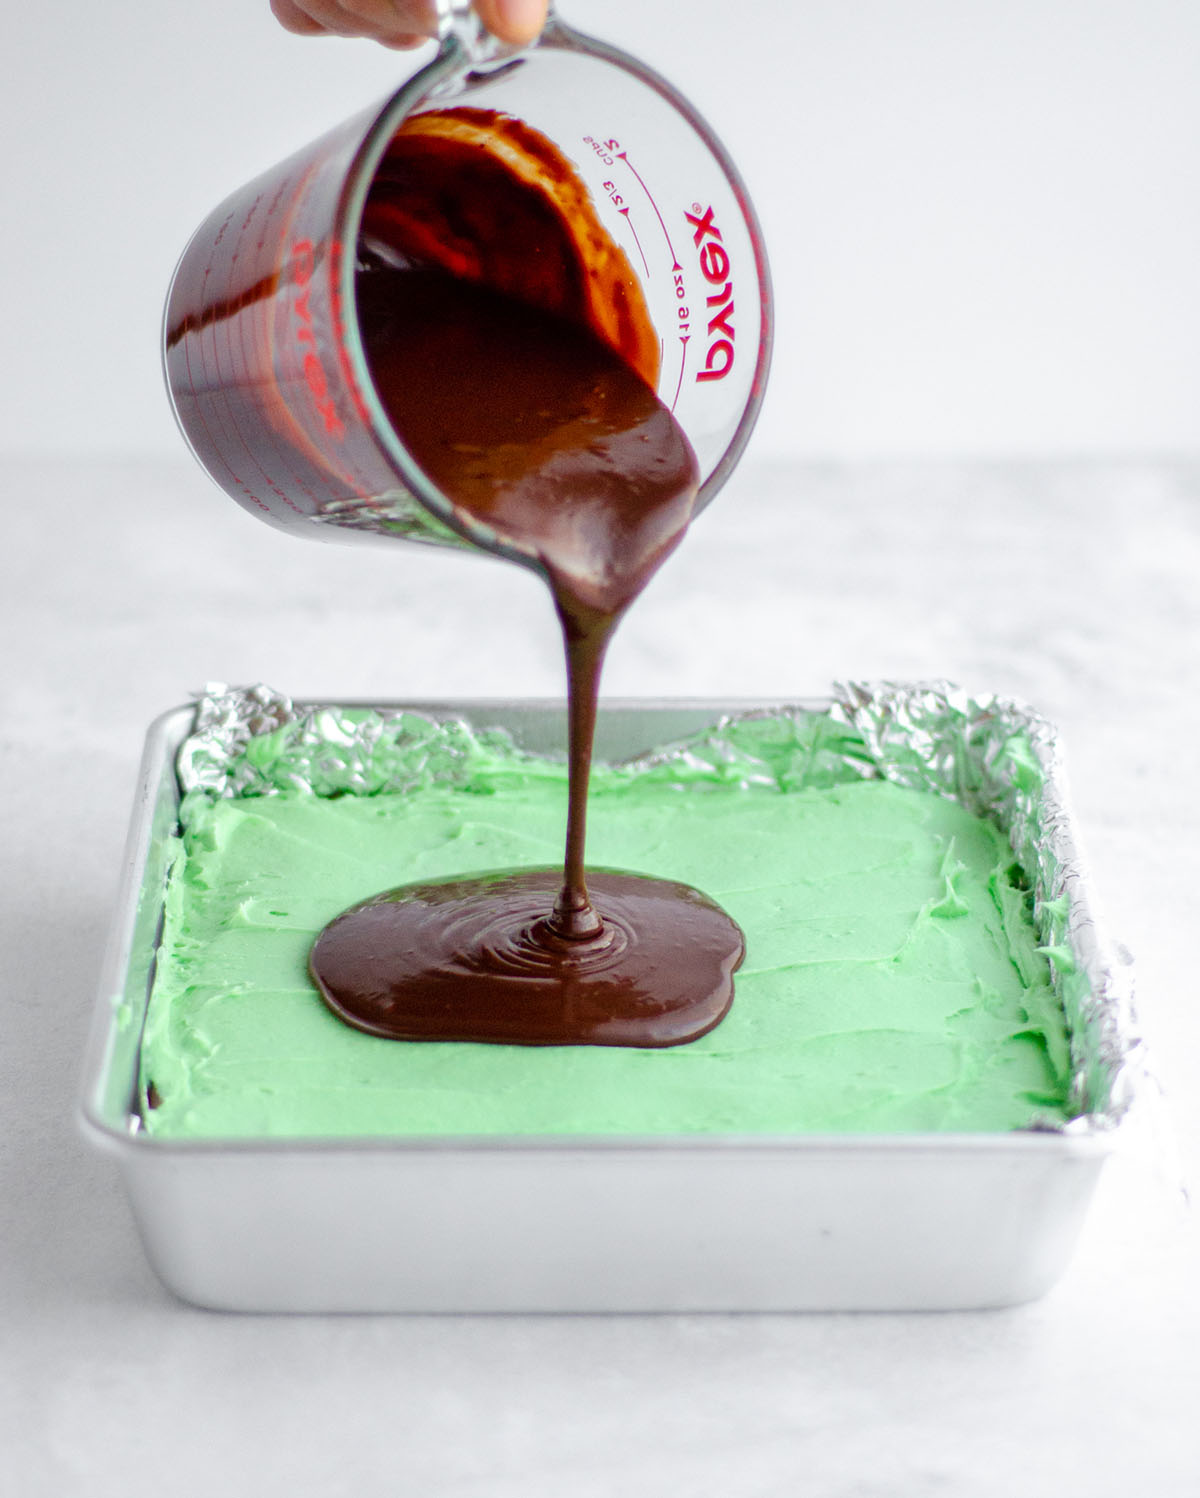 pouring chocolate onto mint layer of mint chocolate brownies